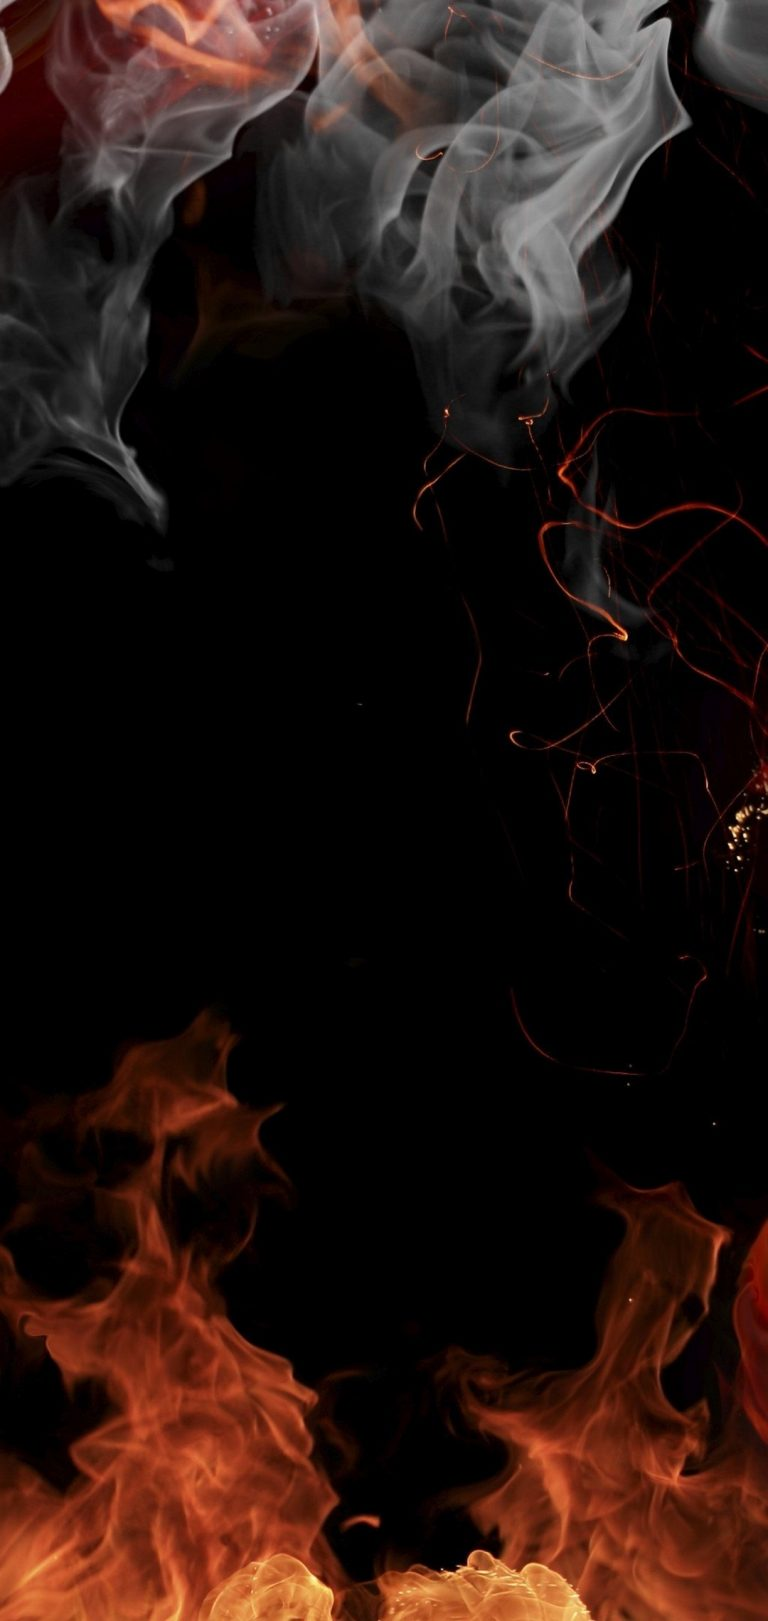 Fire Smoke Flowers Wallpaper 1080x2280 768x1621